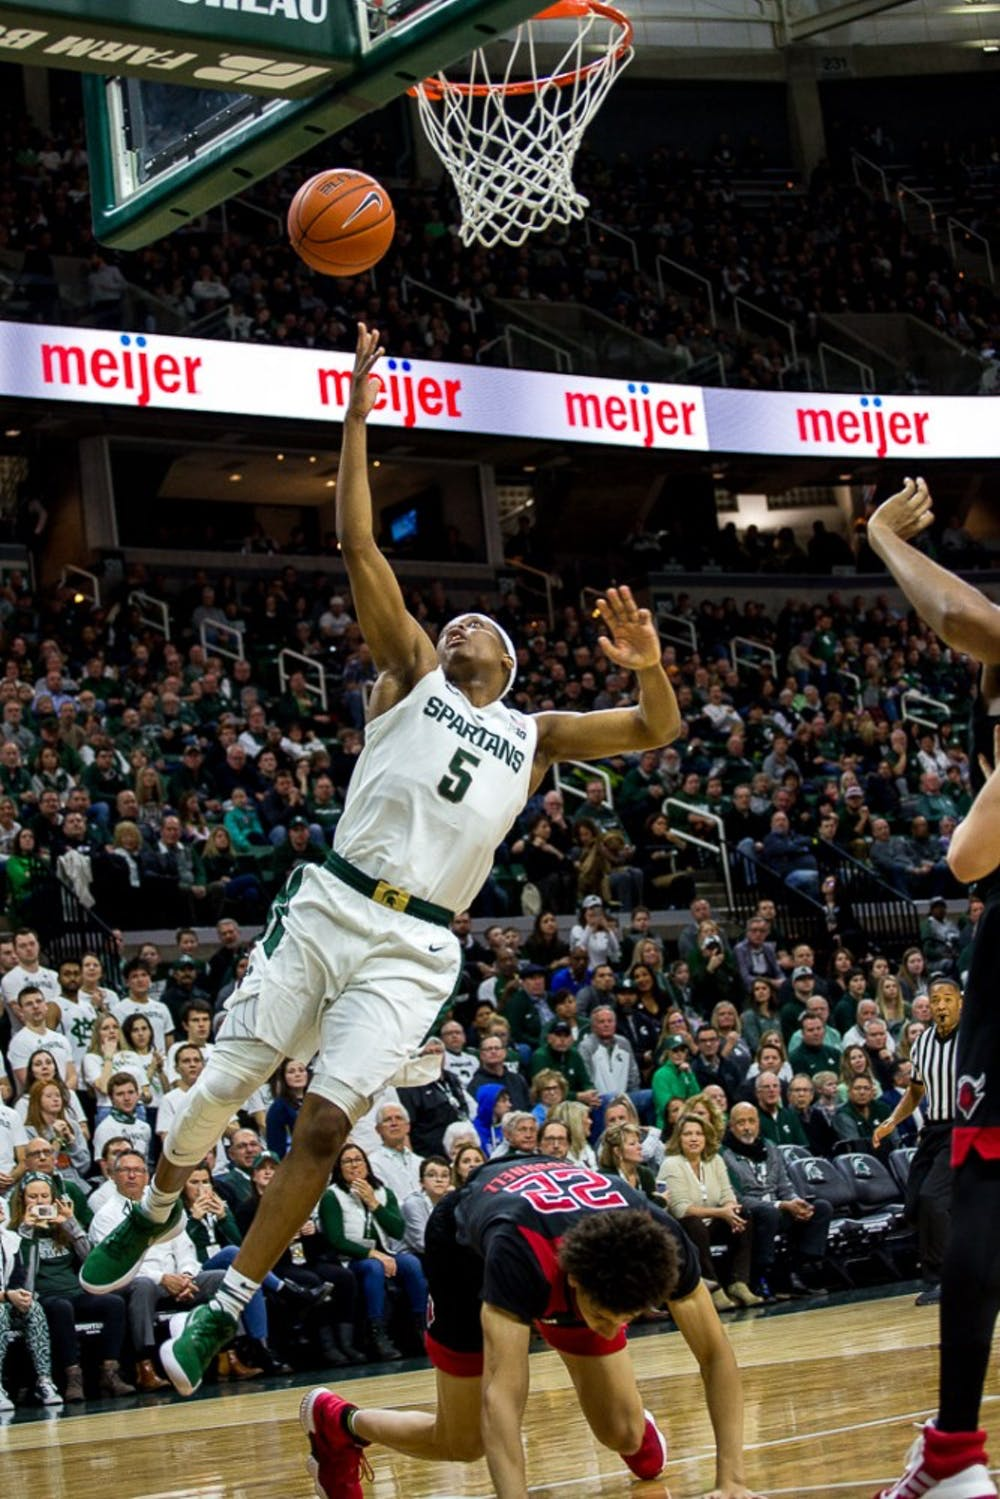 Basketball vs. Rutgers: Feb. 20, 2019